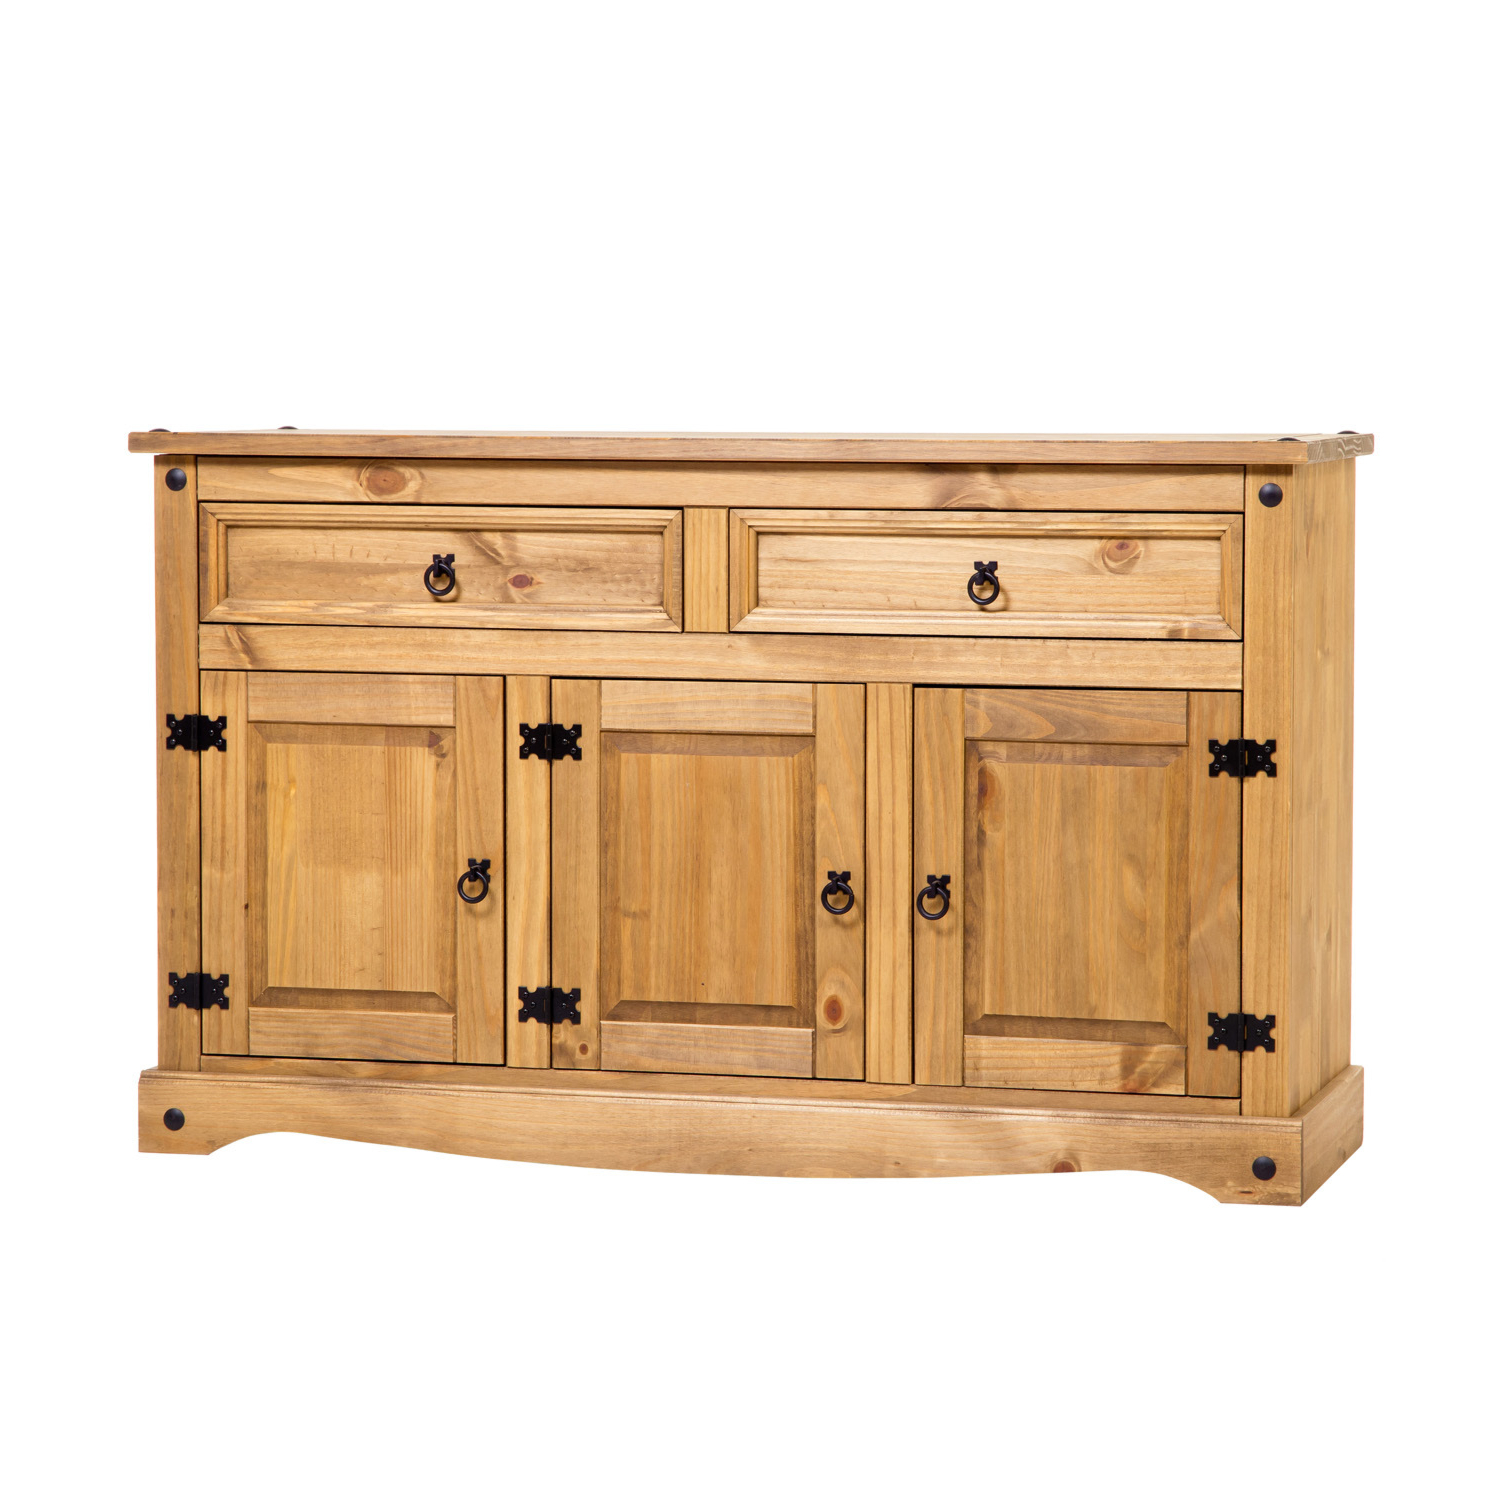 2 Drawer Sideboards Throughout Well Known Corona Three Door Two Drawer Medium Sideboard (Gallery 4 of 20)